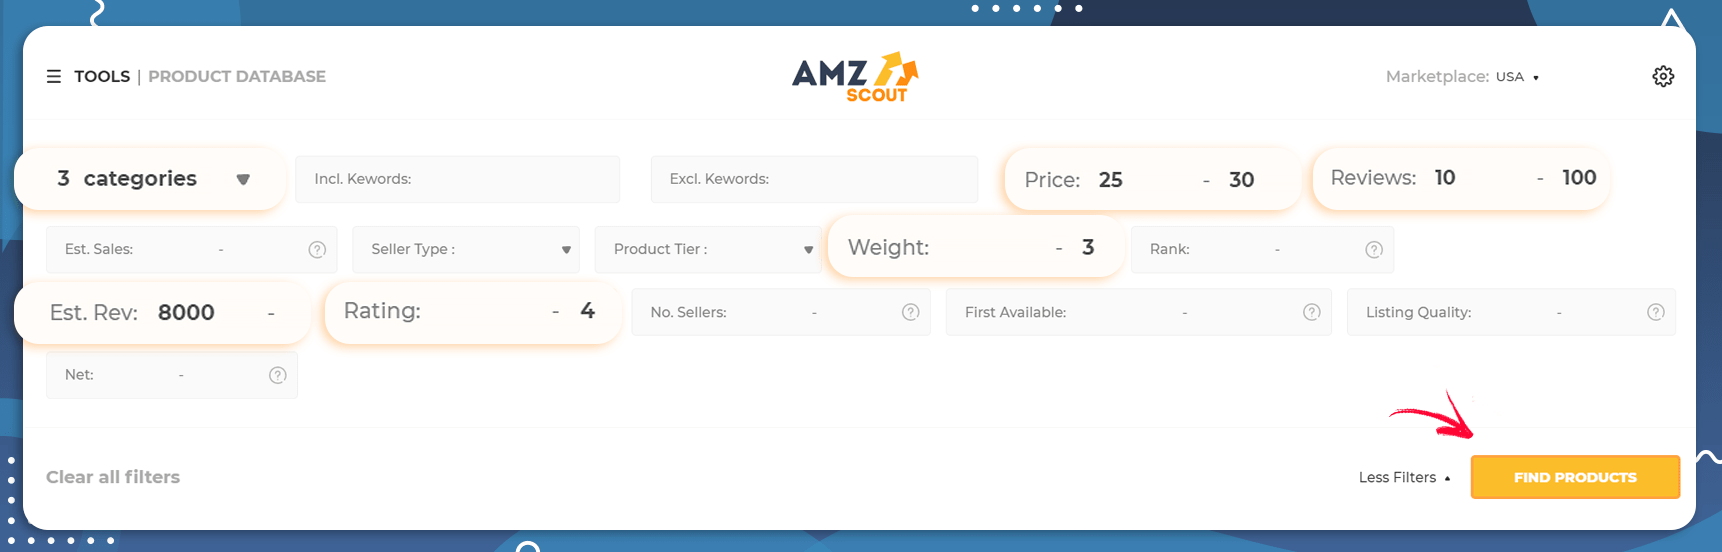 amazon product discovery amzscout step 1